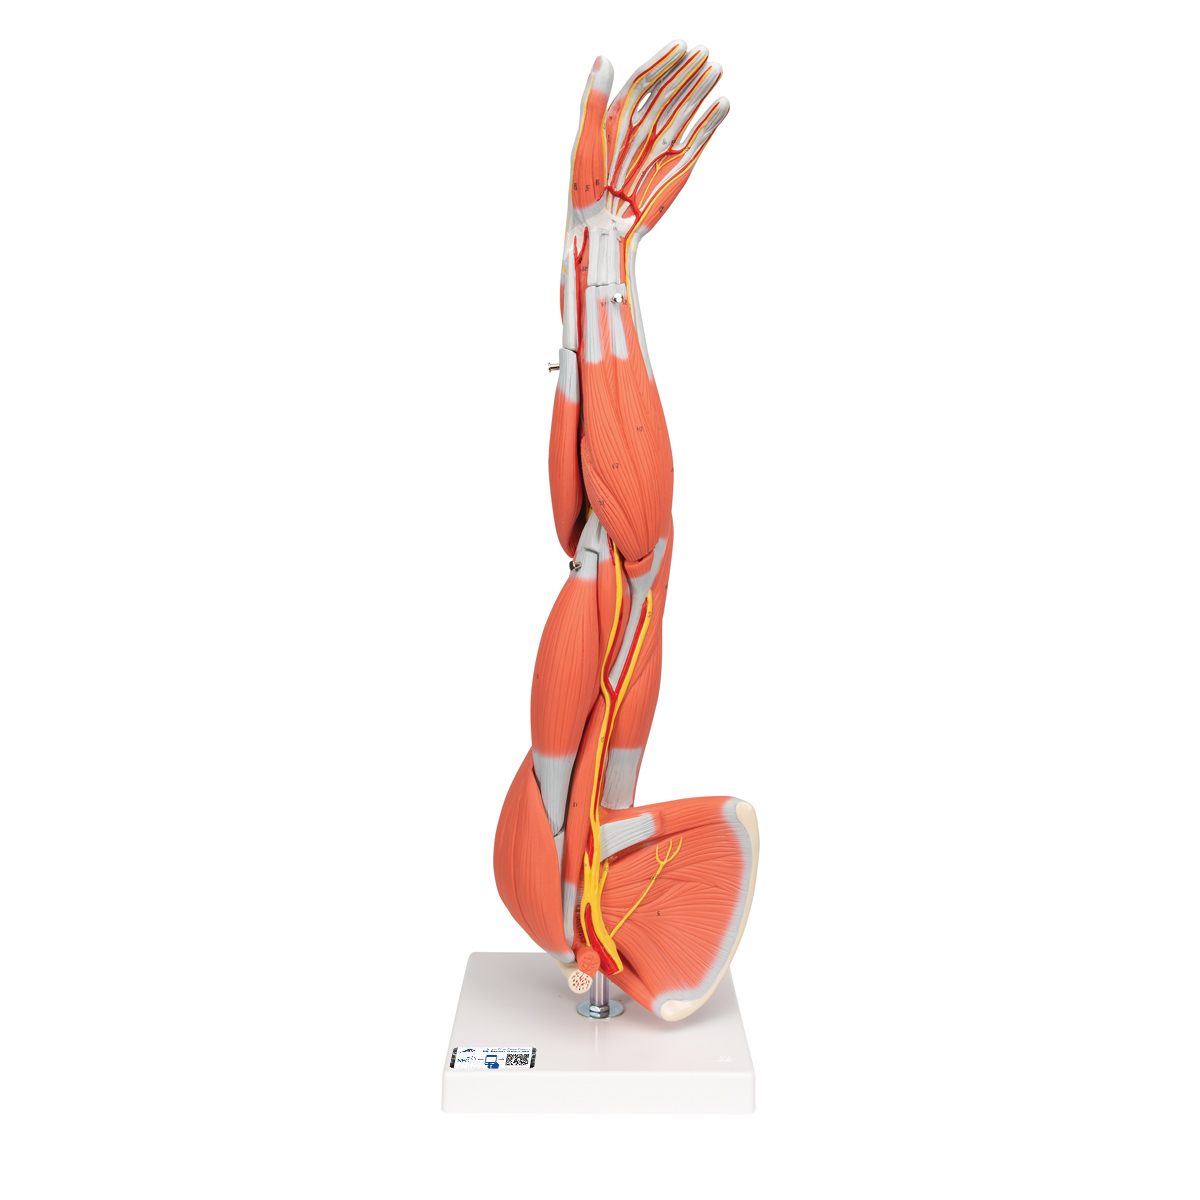 Anatomy Models And Videos